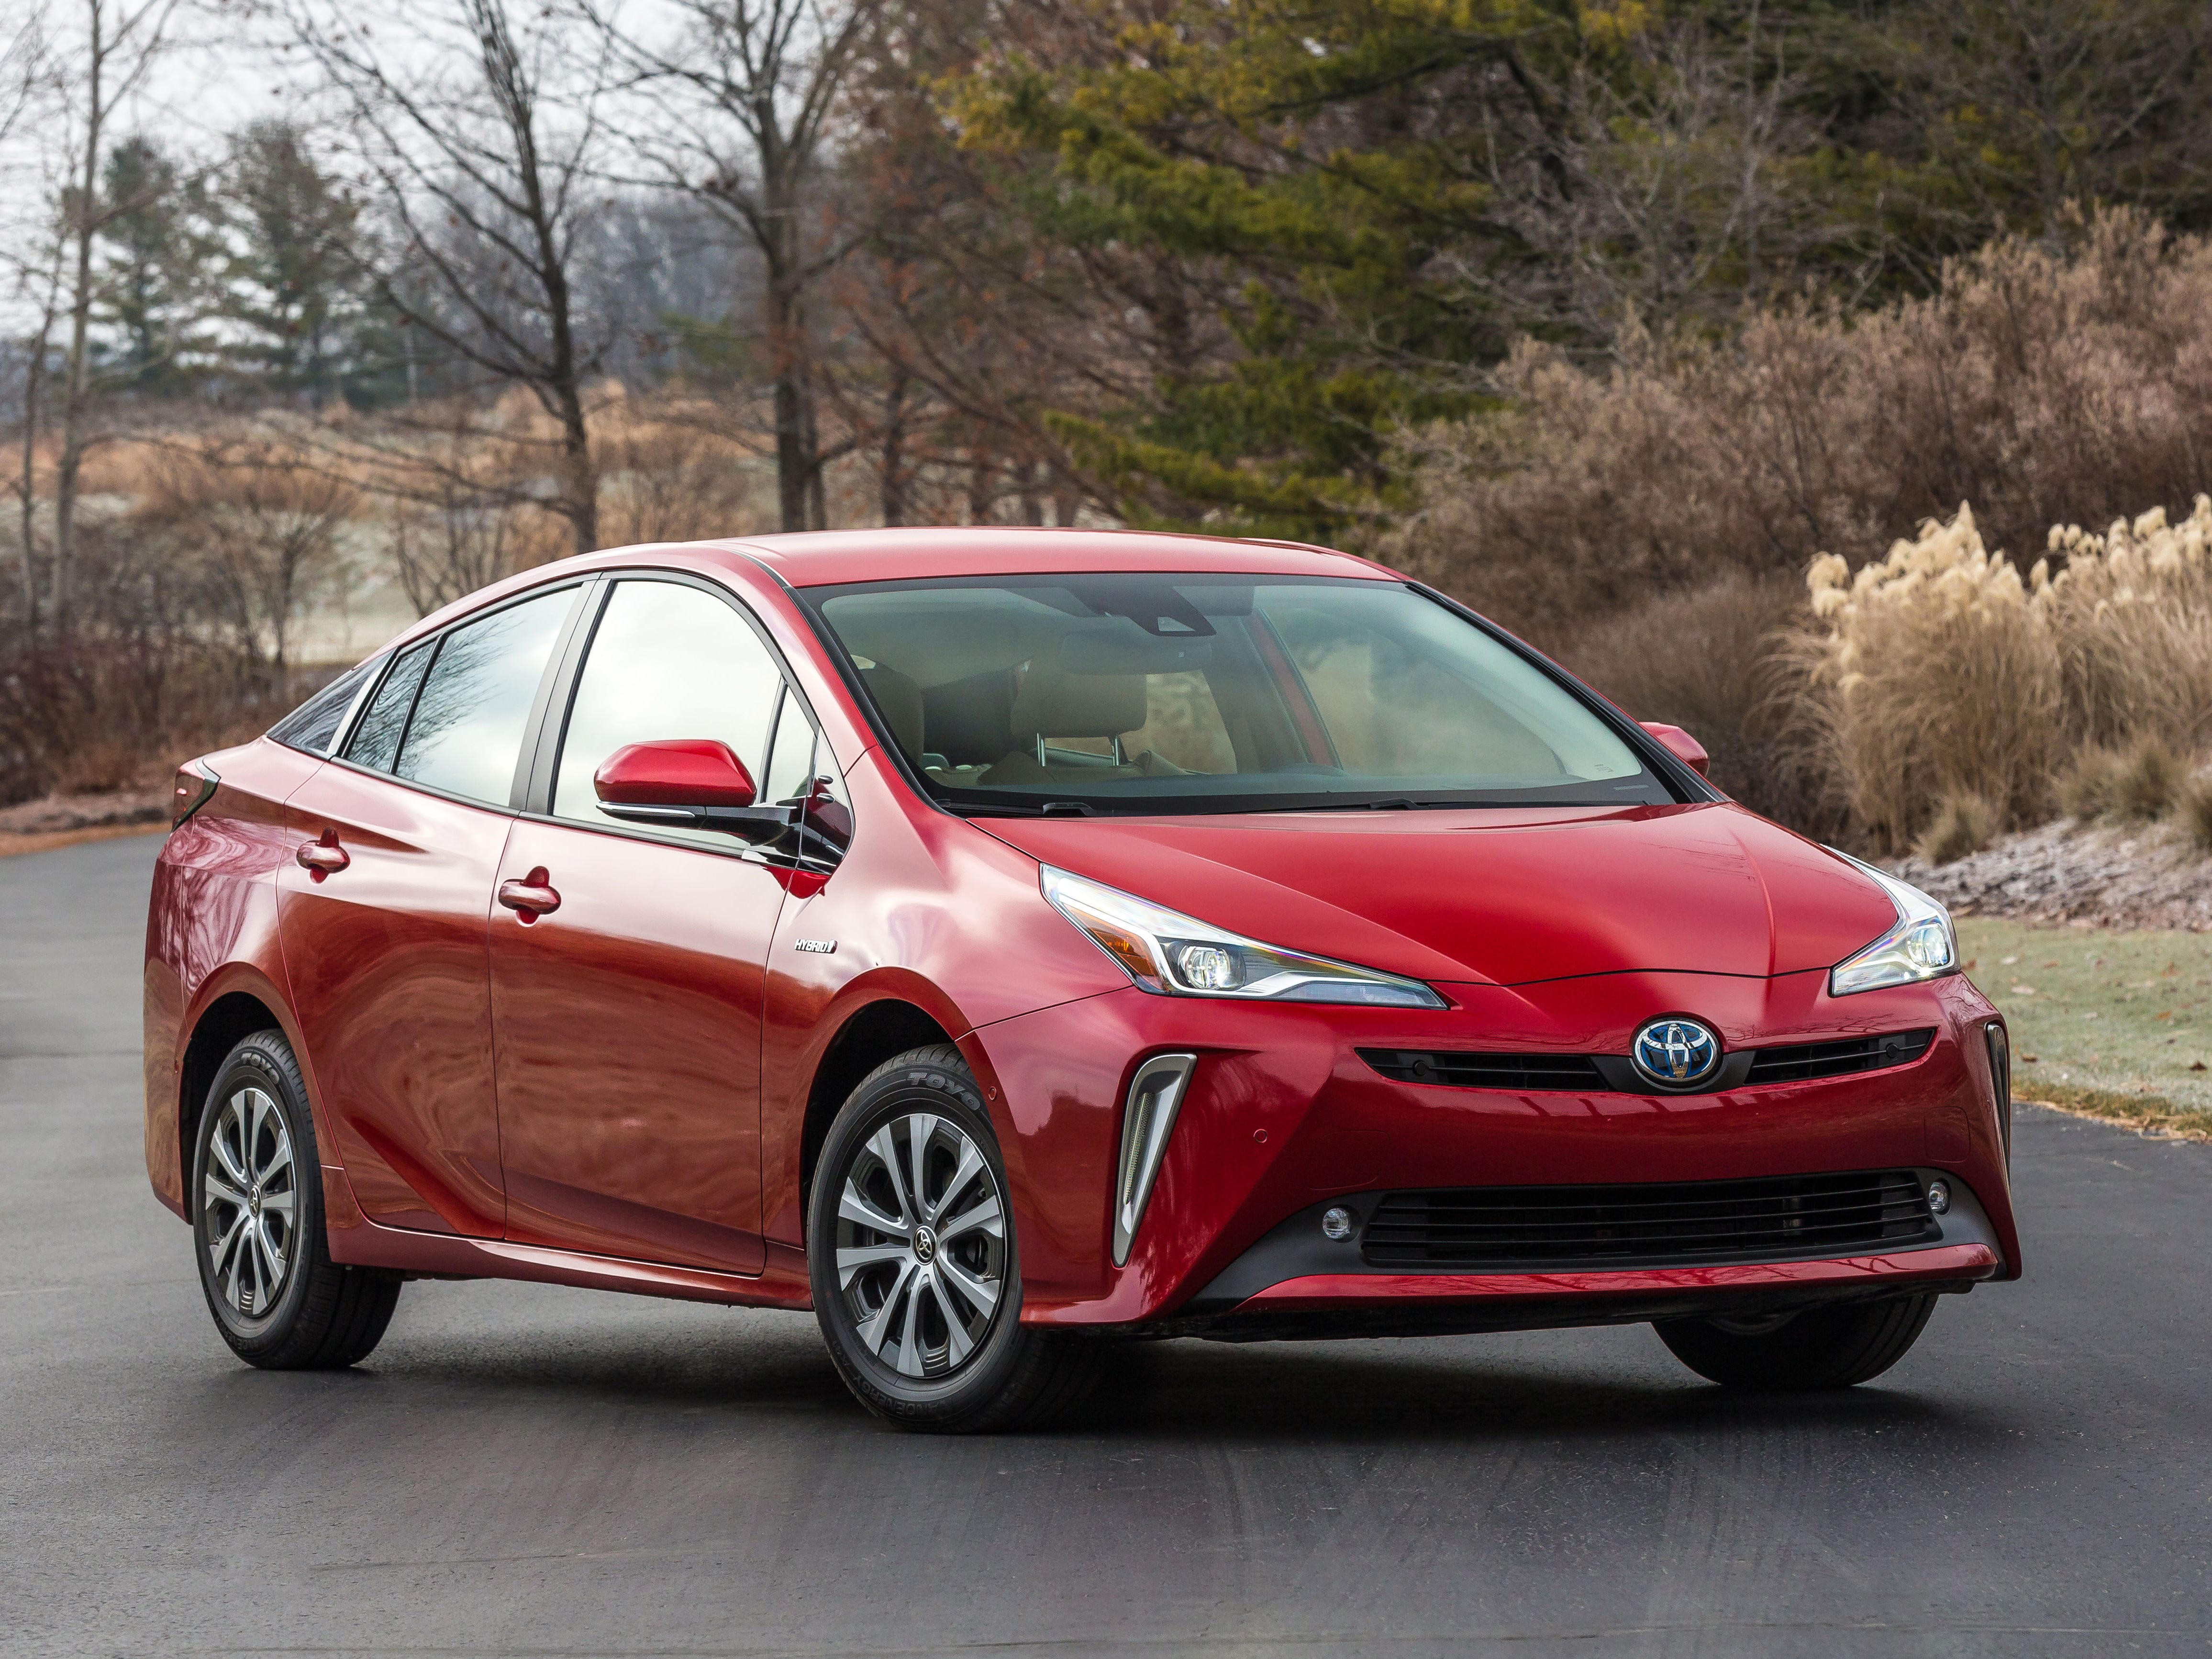 For the 52 mpg Toyota Prius, the new gas tax would hit twice – on fuel (a $122 annual increase) and registration fee (a $112.50 increase) for a total of $234.50. That's on top of the $712.50 combined cost of fuel ($665) and registration fee ($47.50) paid today.